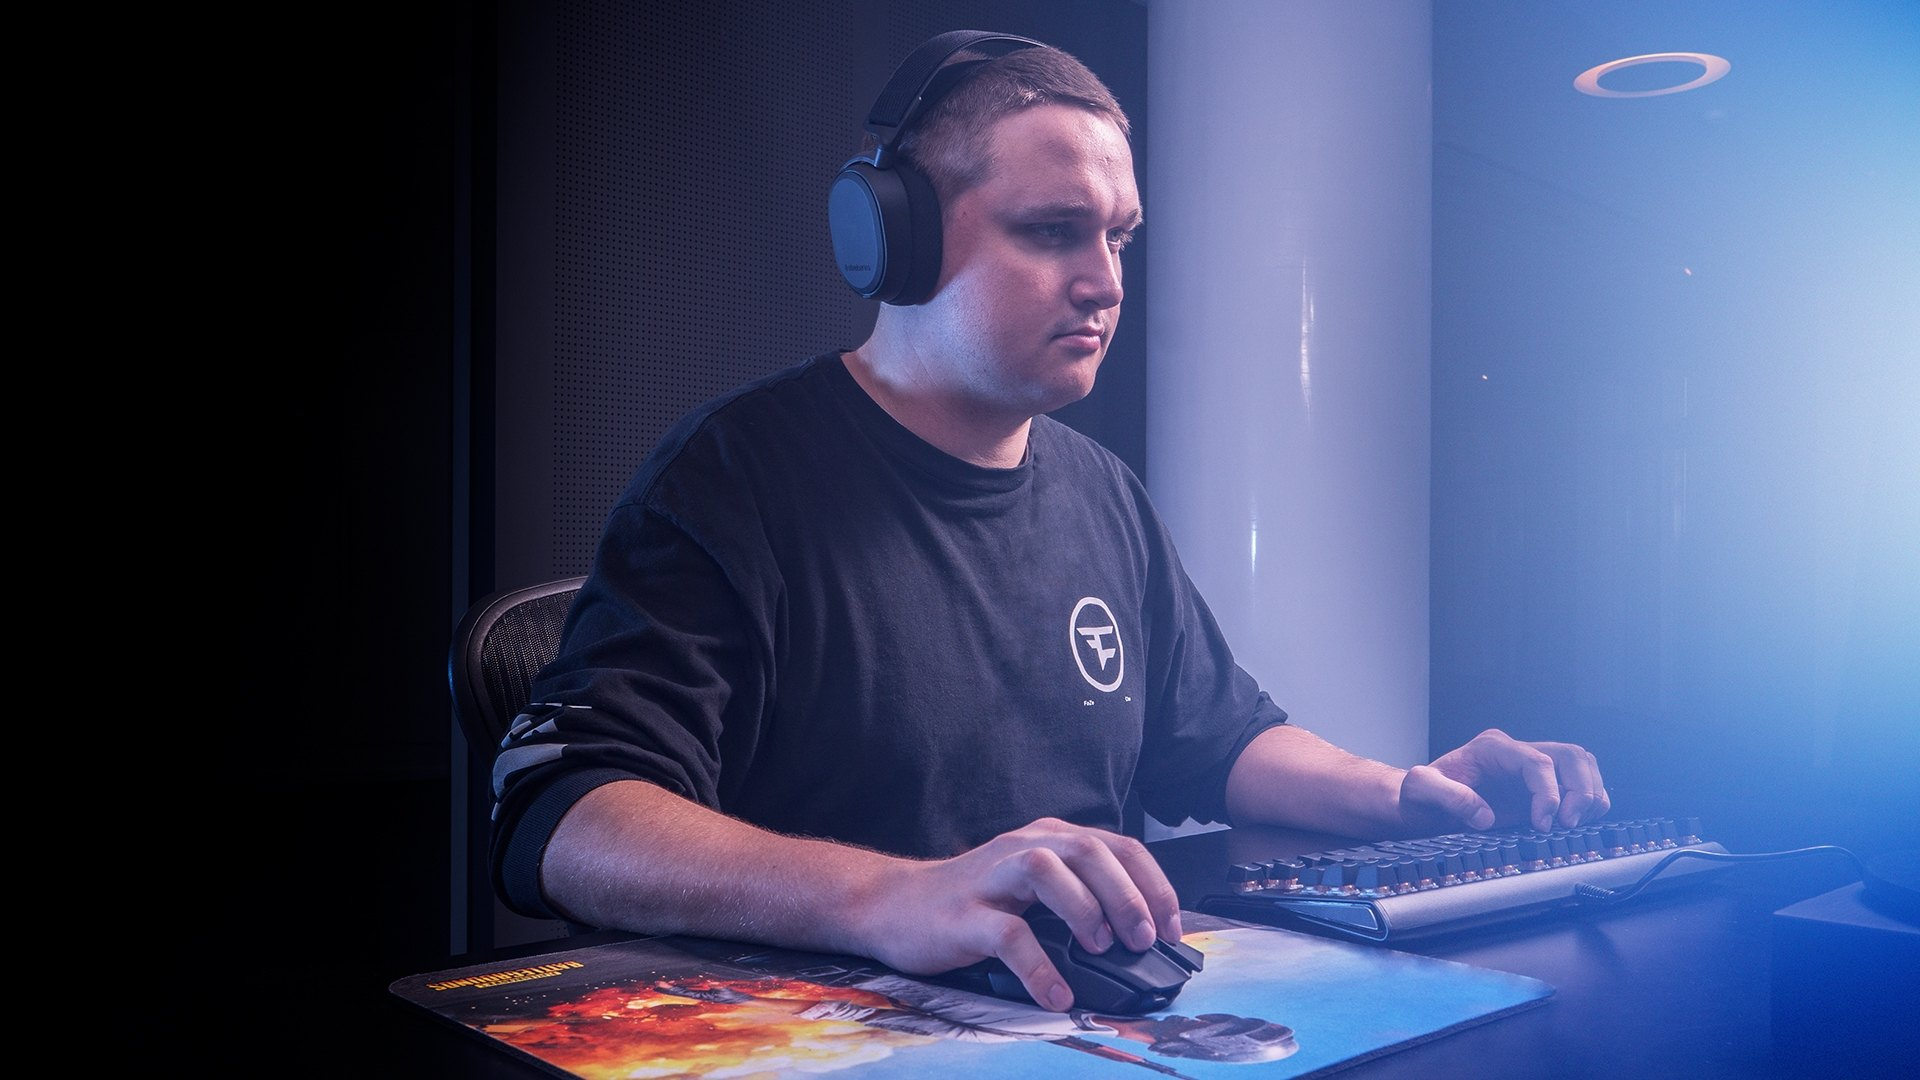 "FaZe Clan PUBG player Anssi ""mxey"" Pekkonen plays a game on the computer wearing a FaZe Clan shirt and SteelSeries Arctis headphones. He grips the keyboard with one hand and a wireless mouse in the other, using a large PUBG branded mousepad."